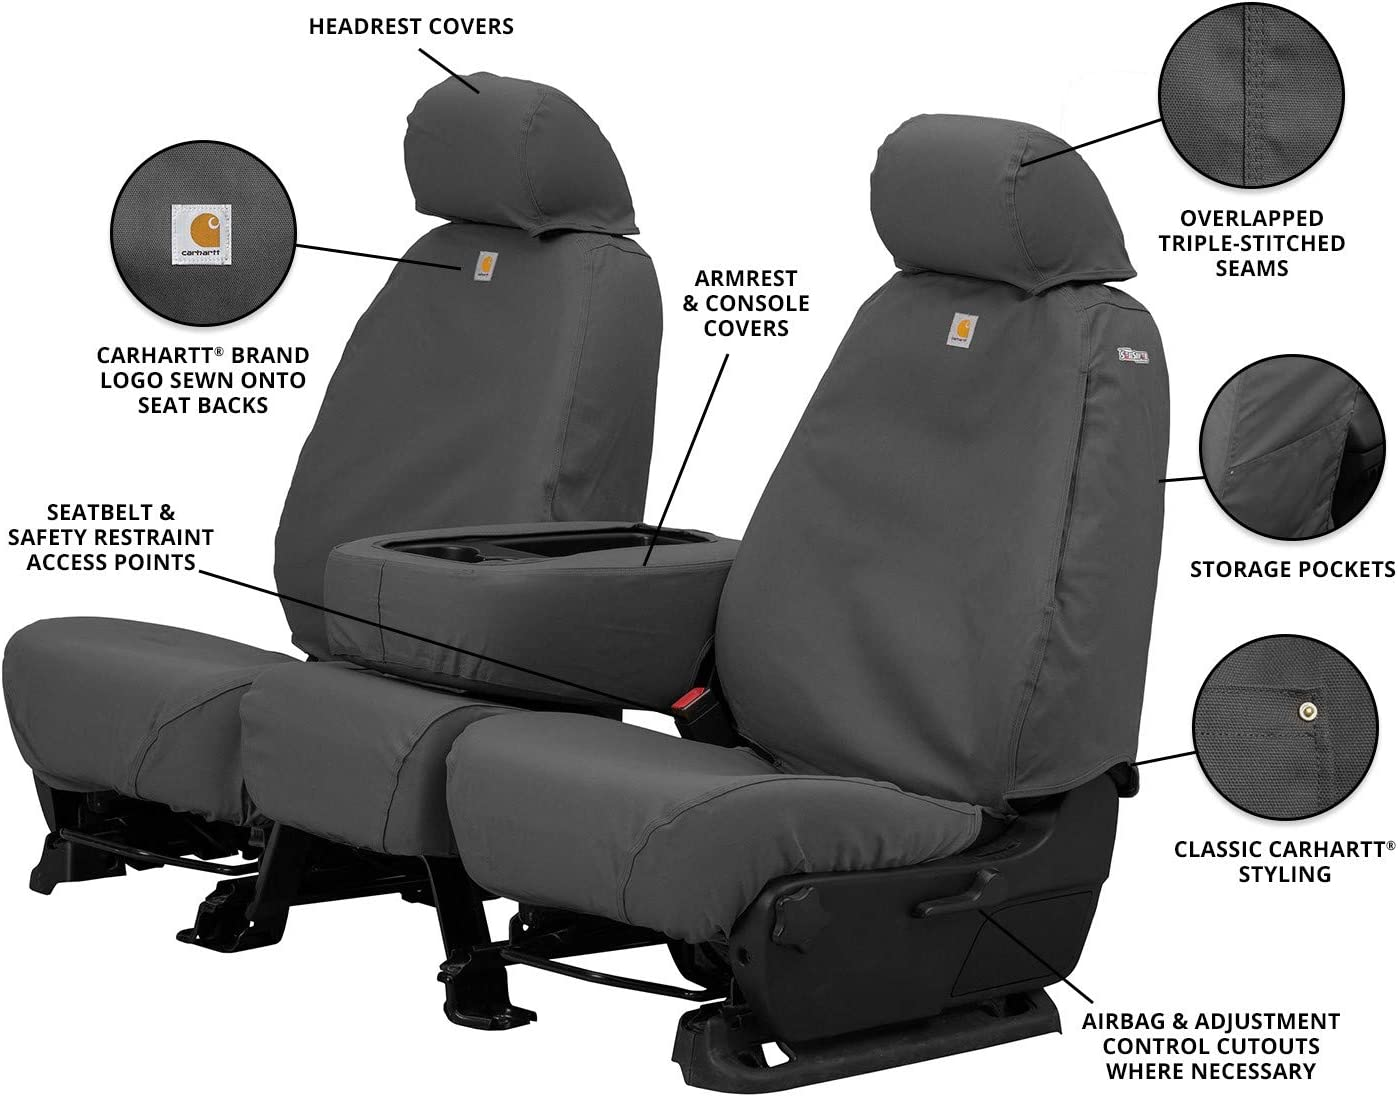 Gravel Duck Weave Covercraft Carhartt SeatSaver Second Row Custom Fit Seat Cover for Select Jeep Renegade Models